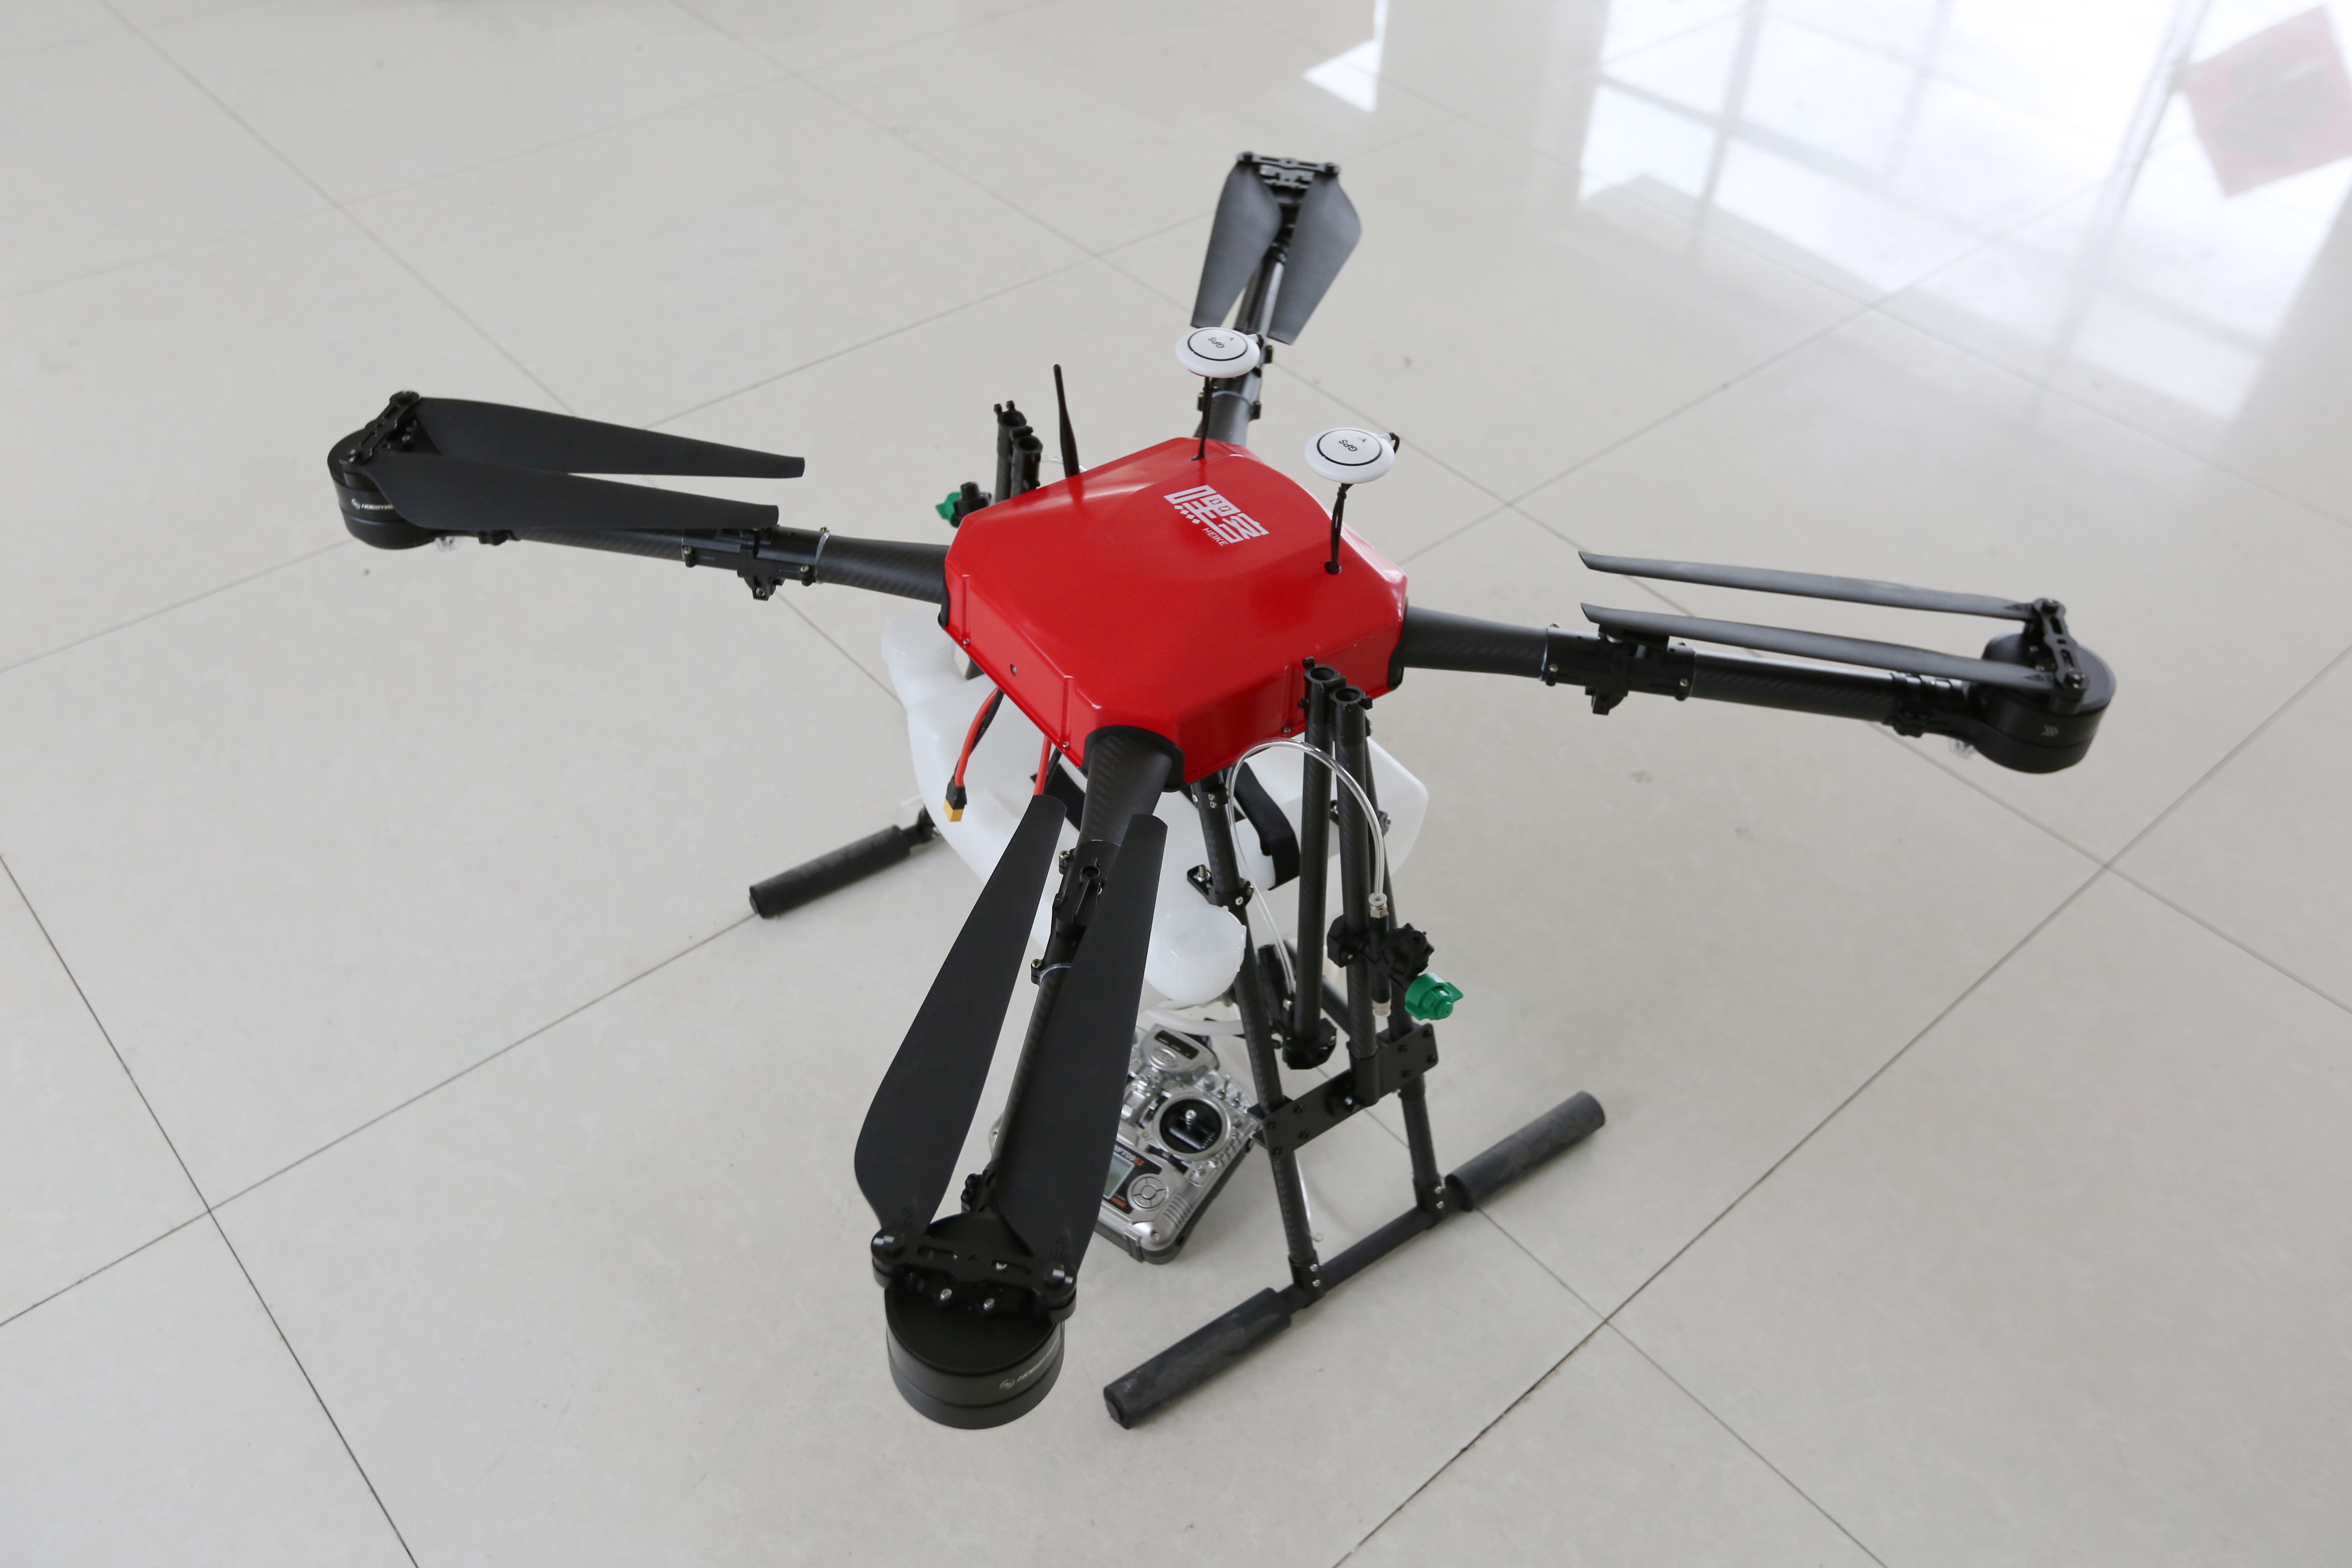 Advantages of Agriculture UAV Drone in Precision Agriculture